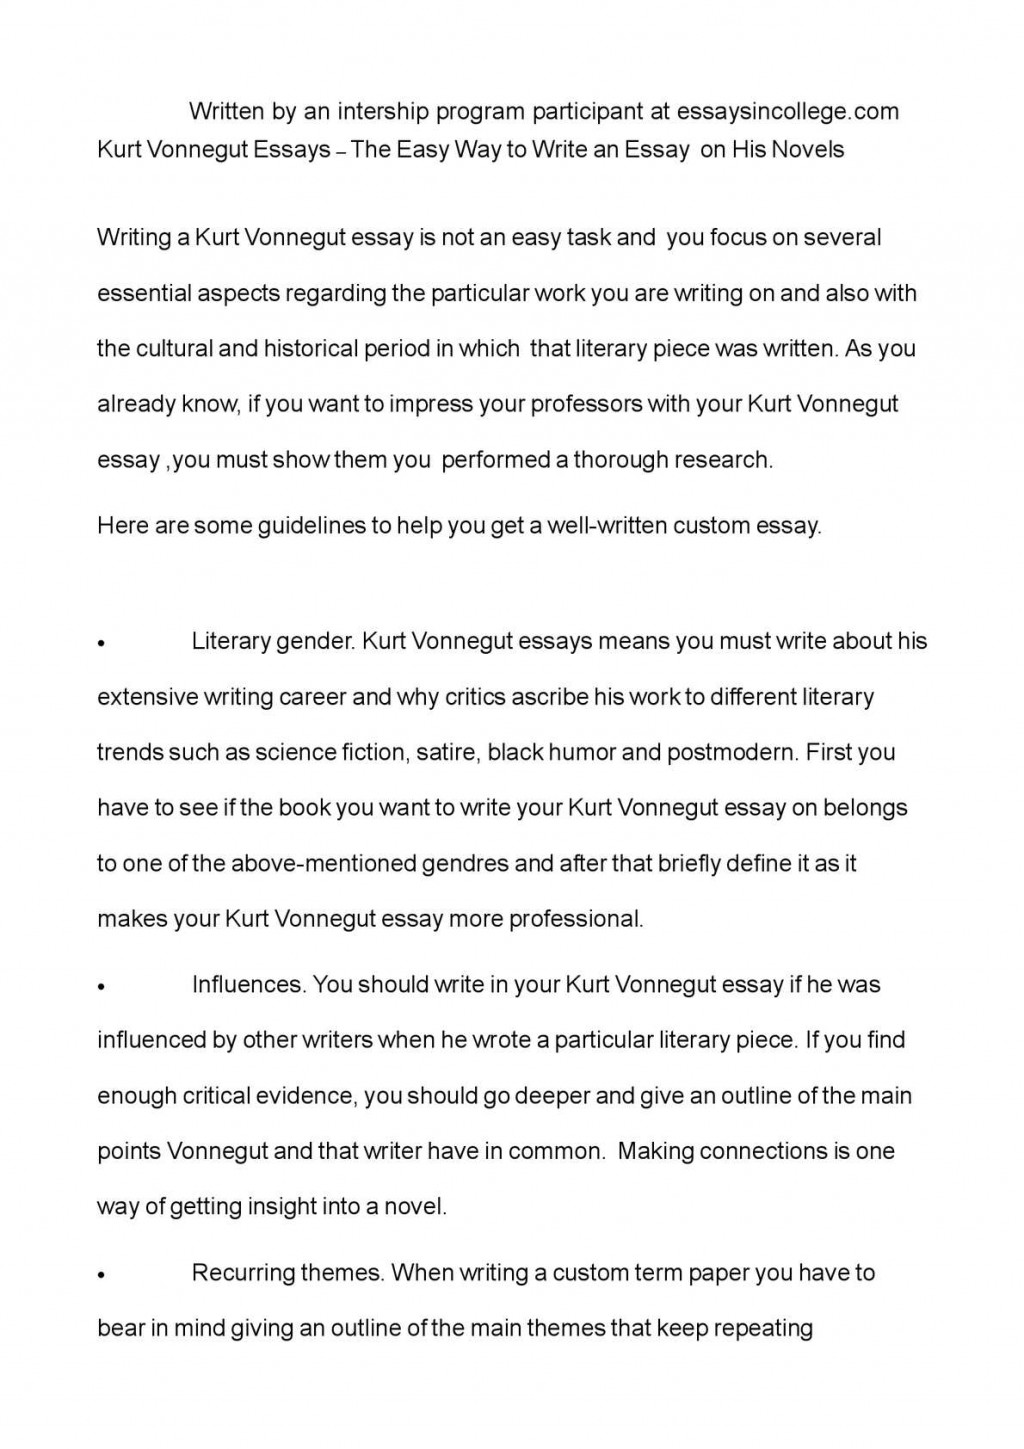 003 Easy Way To Write An Essay P1 Excellent Argumentative How Analytical Example In Ielts Task 2 Large